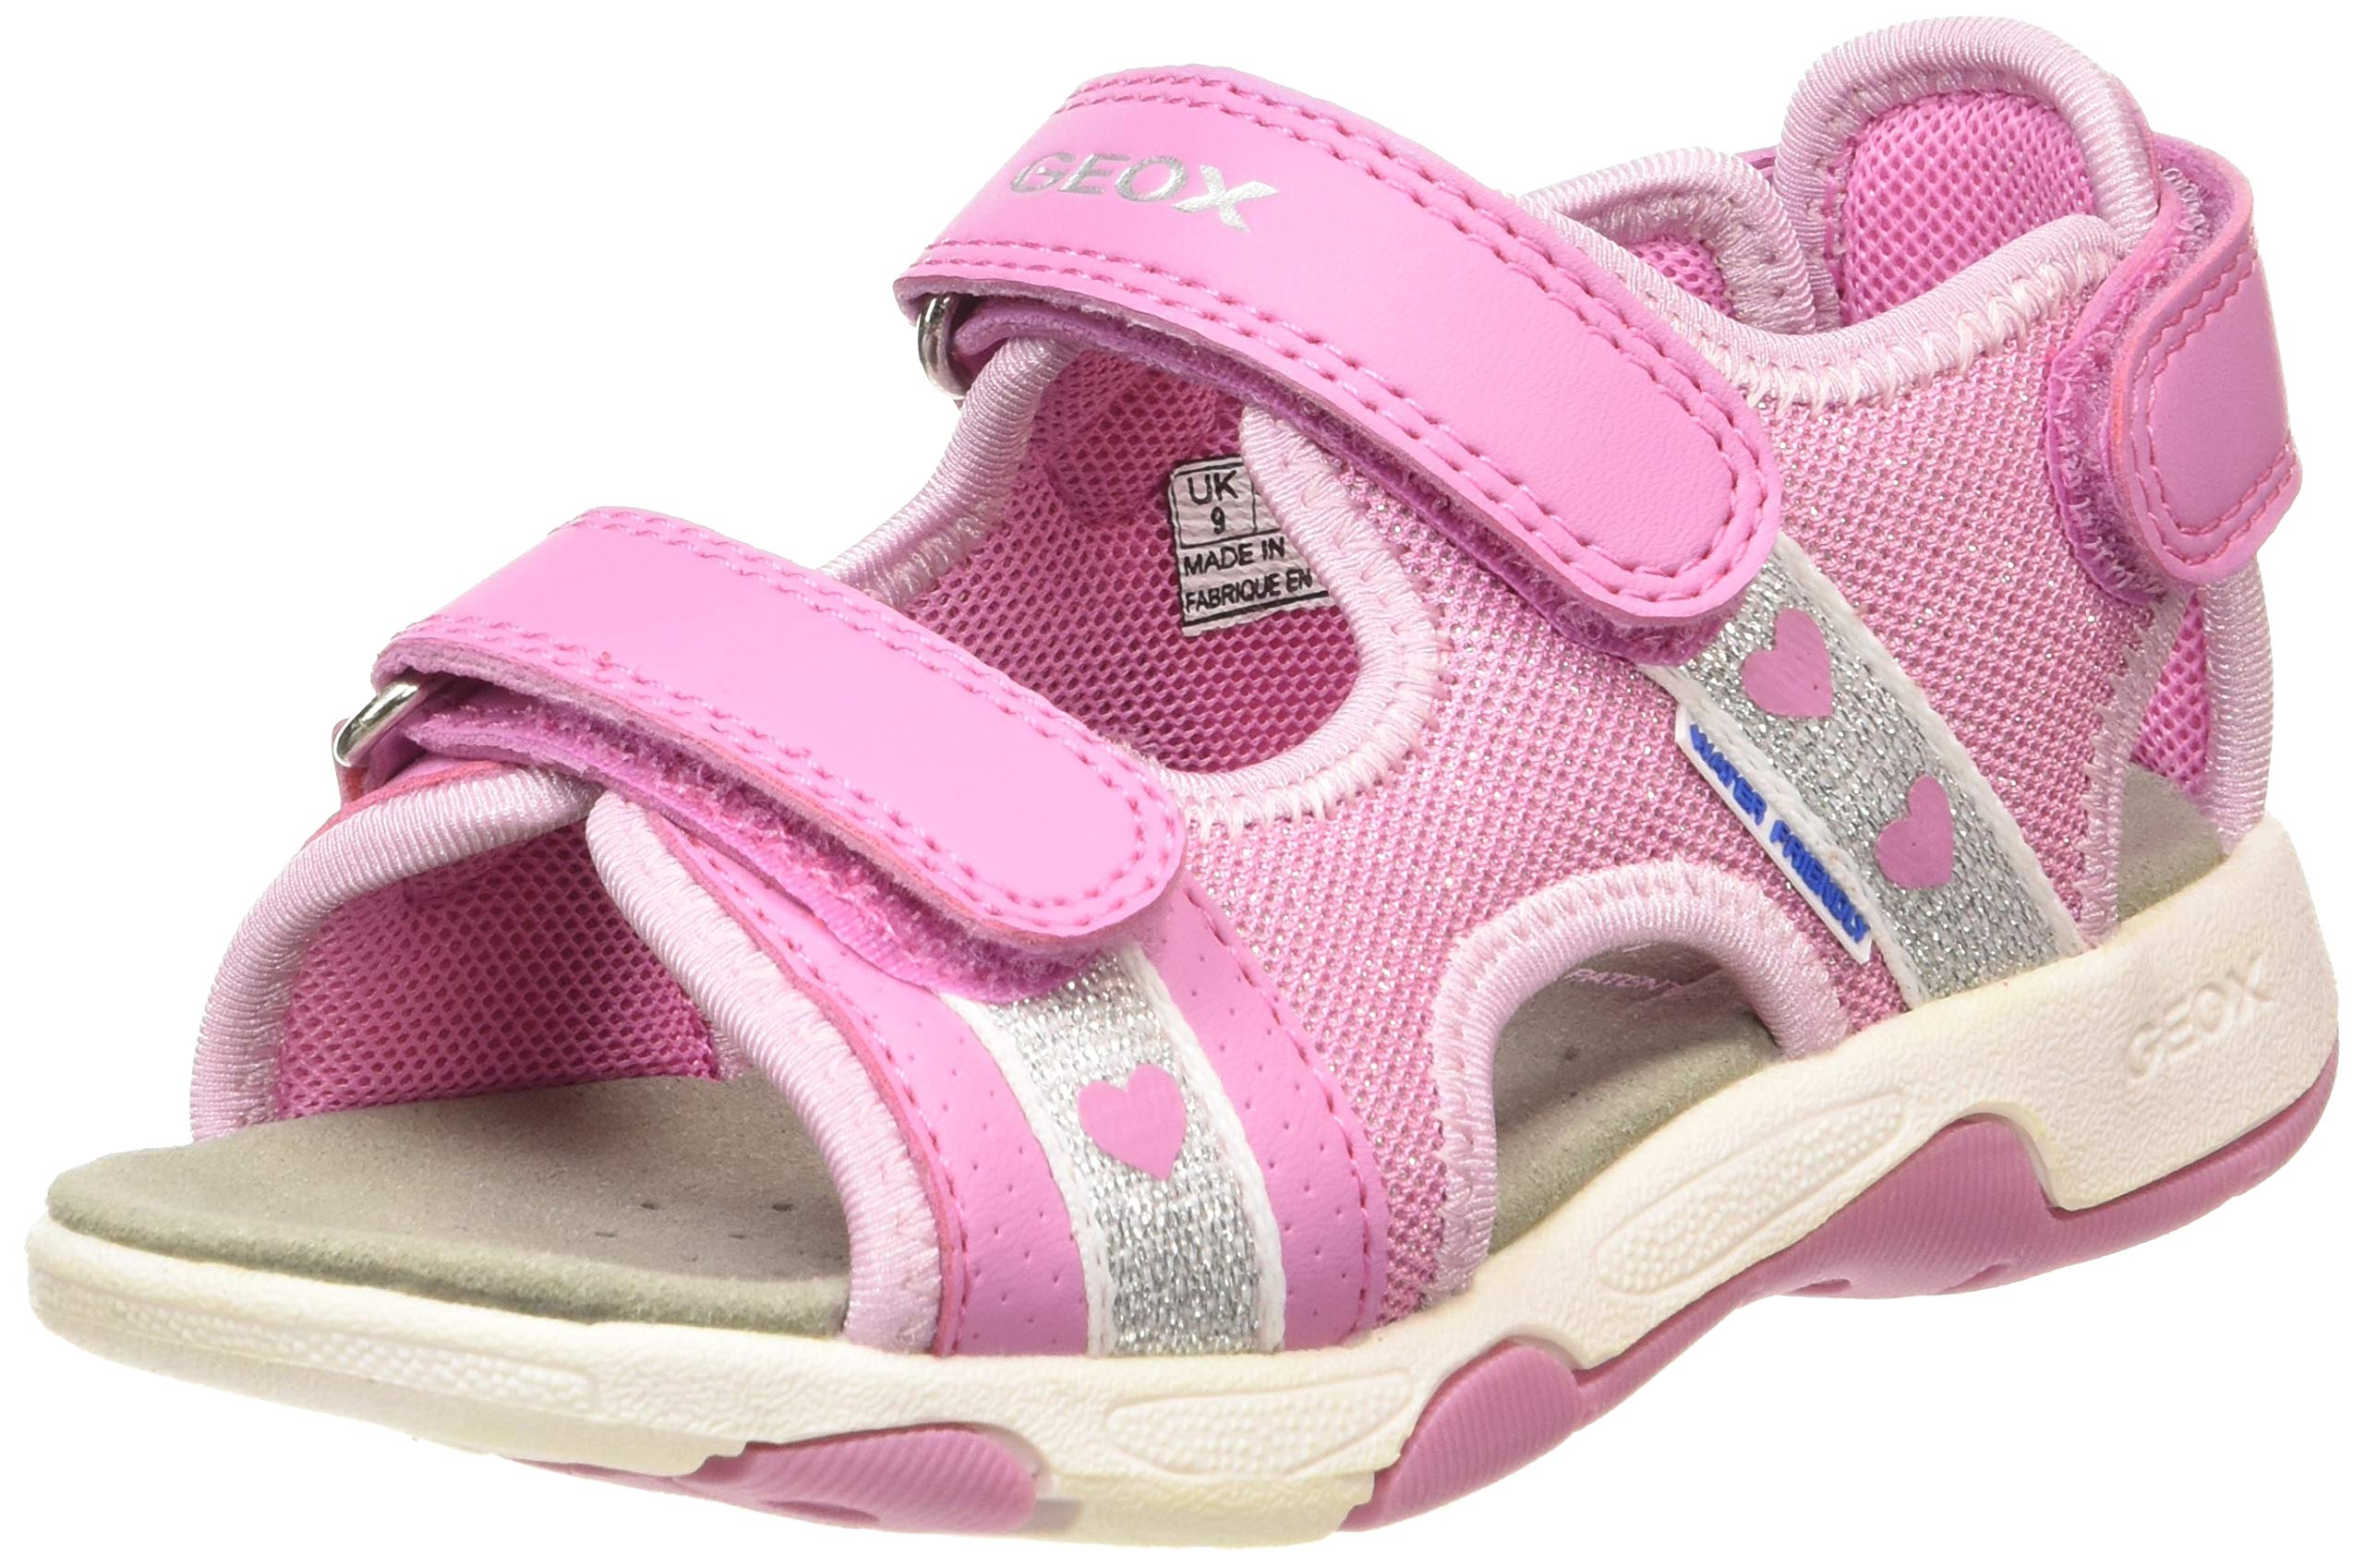 Geox - Baby Sand Multy - B920DB01454C8006 - Color: Pink - Size: 9.0